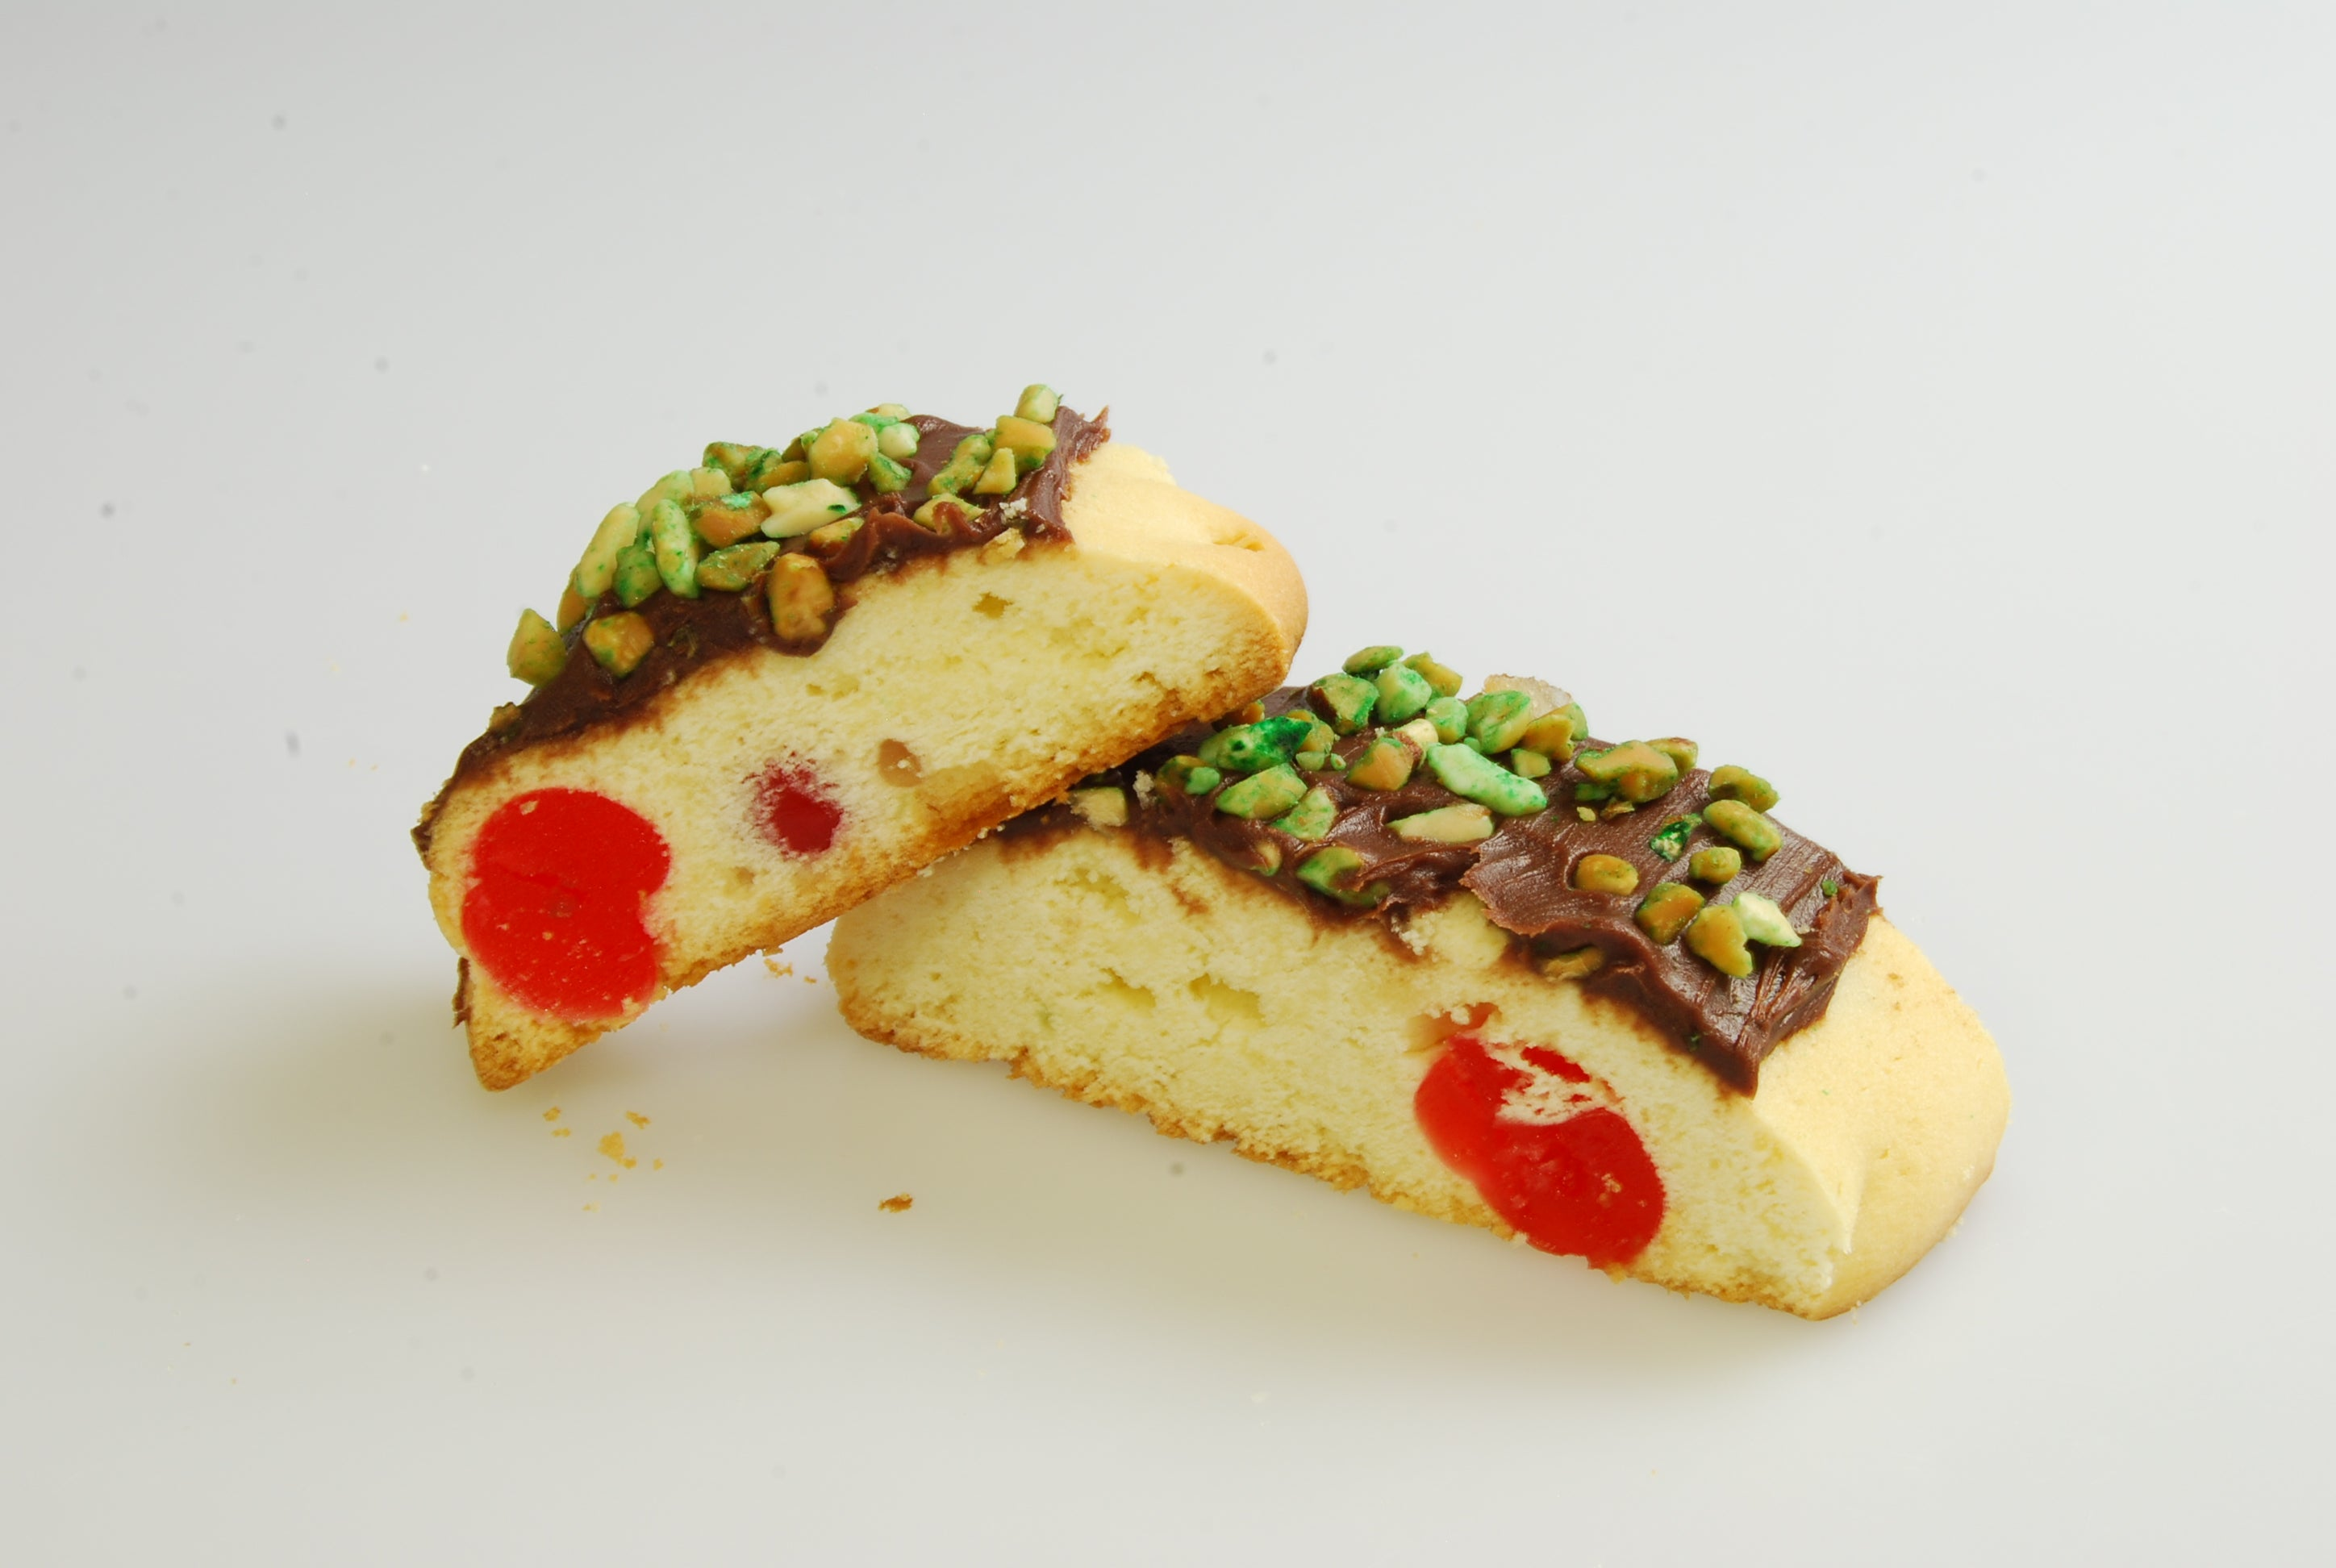 Slices with Fruits and Nuts